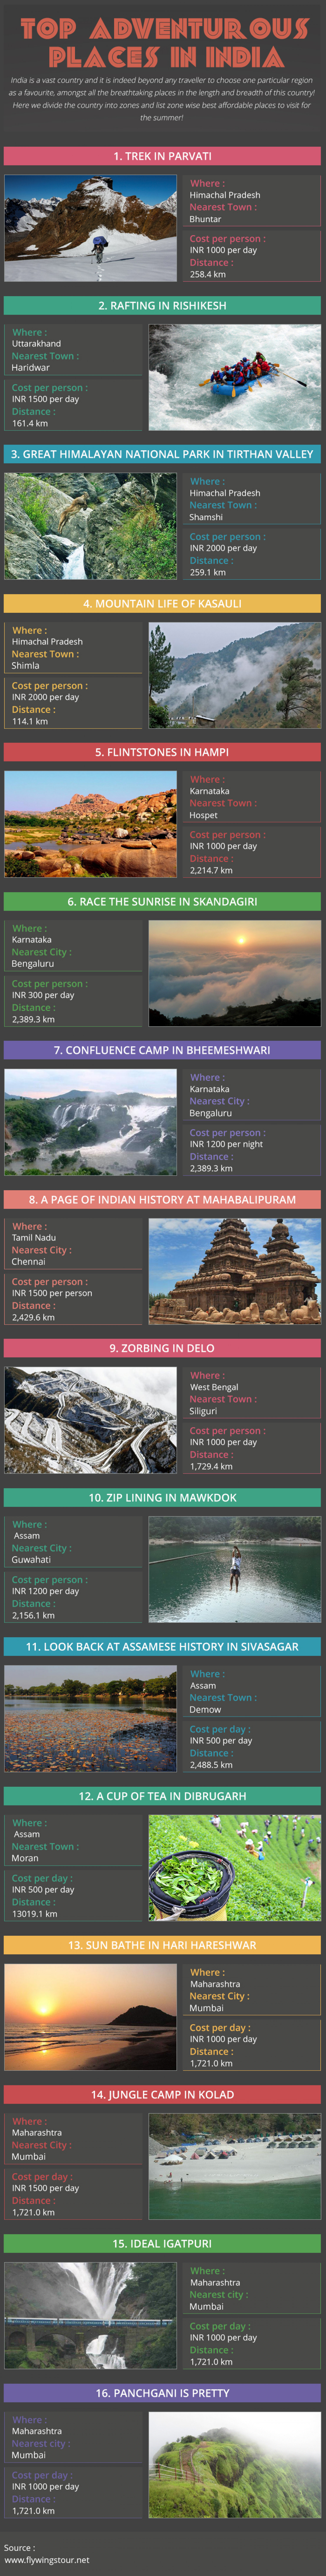 Top 16 Adventurous Places in India Infographic